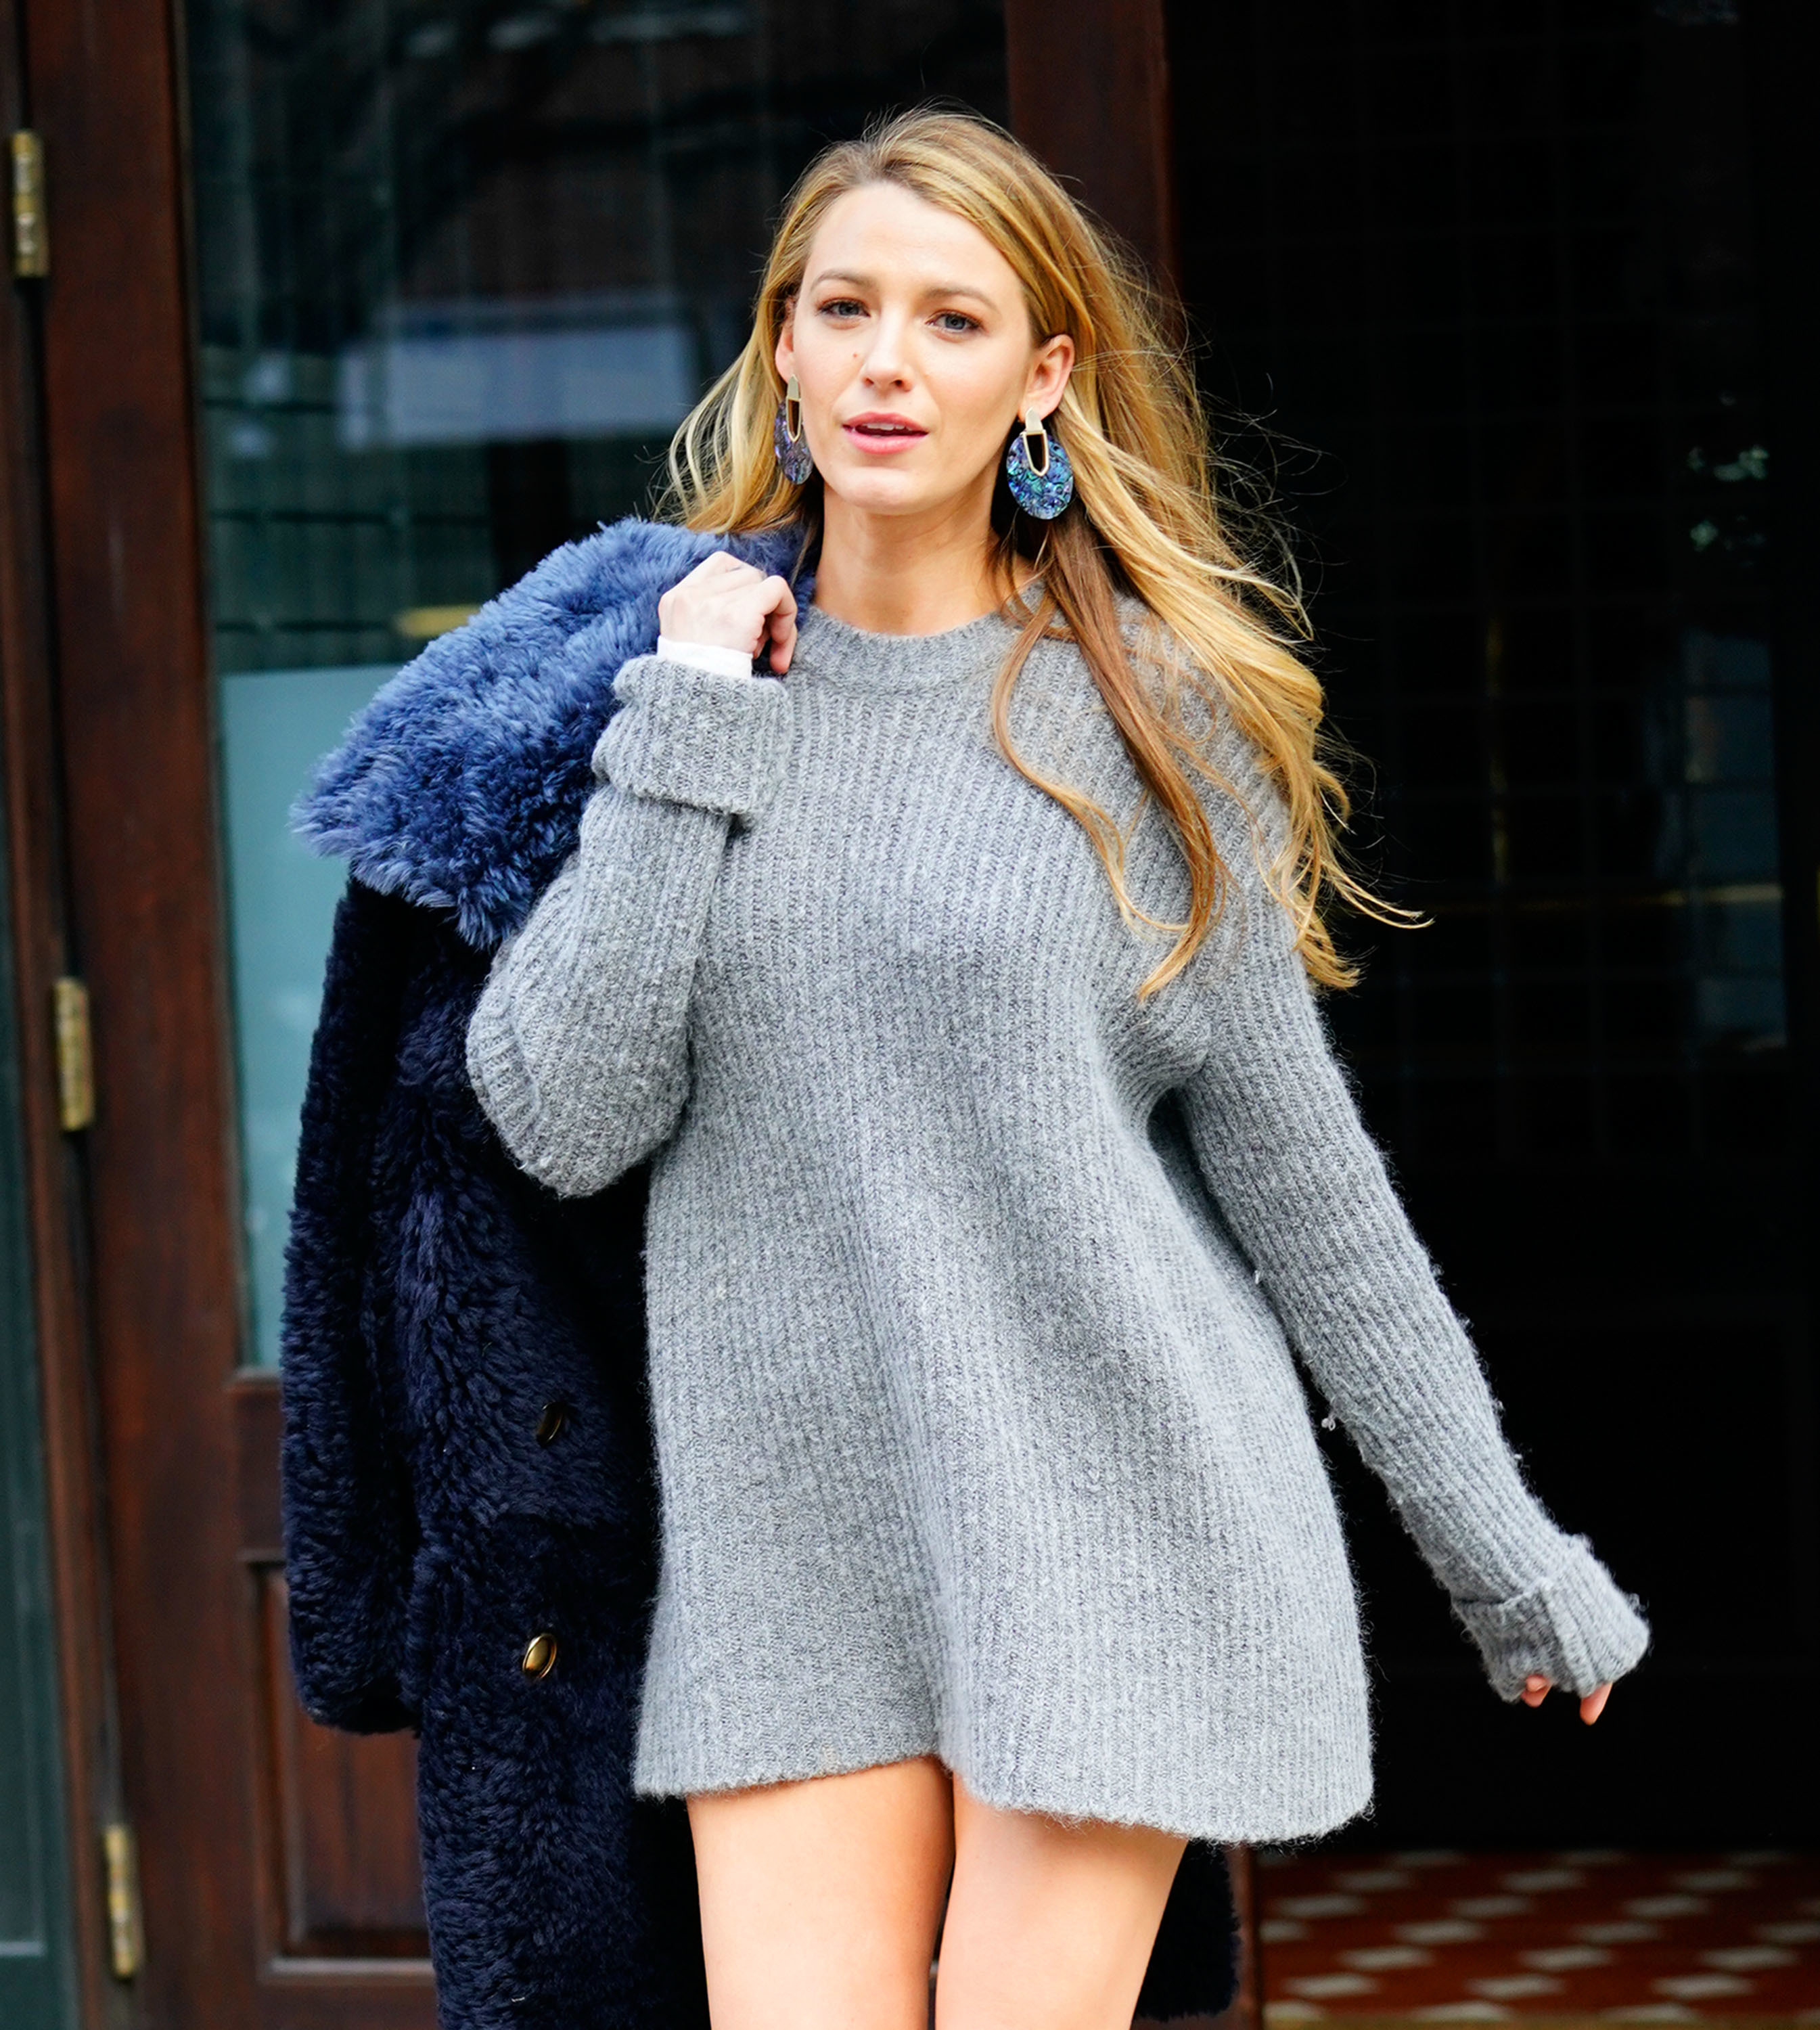 Blake Lively is spotted out and about in a cute grey outfit with knee high boots and blue furry coat in New York City on Feb. 15, 2018.